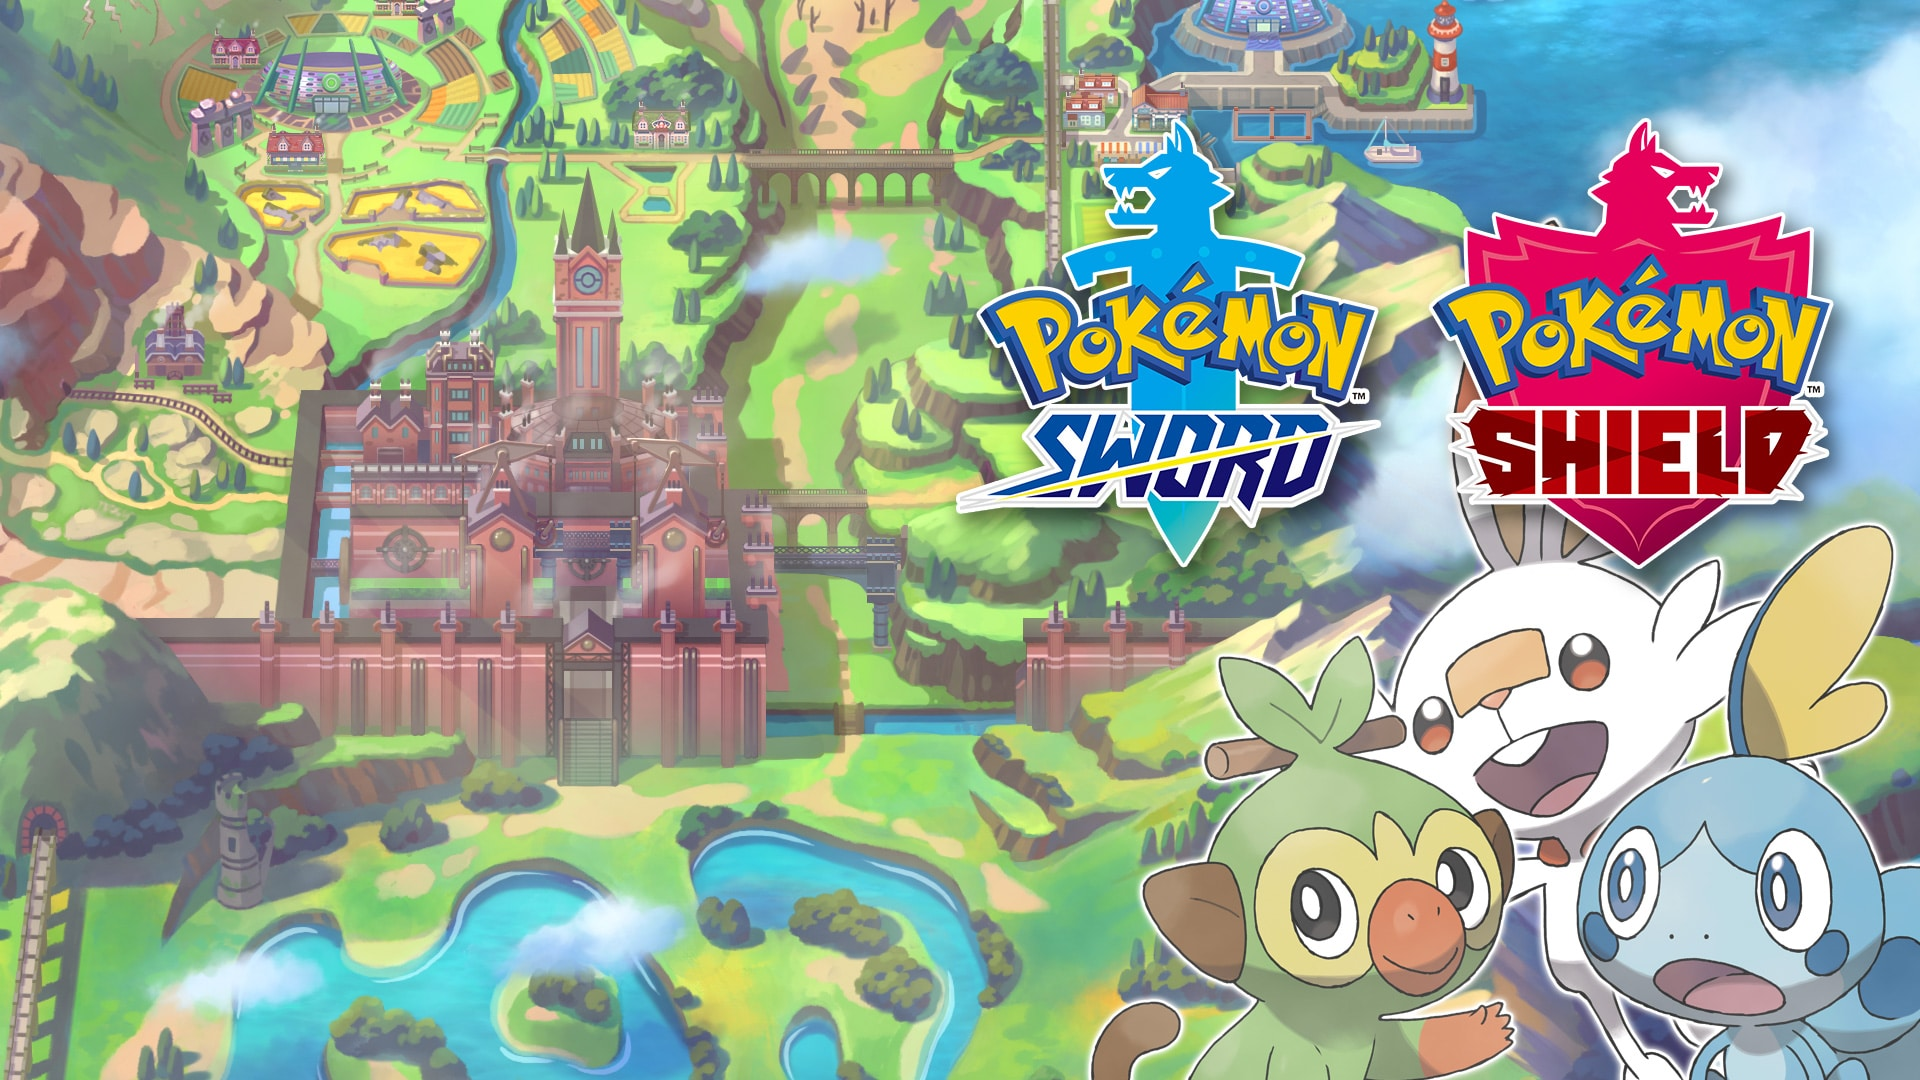 Closer look at Pokemon Sword and Shield's Battle Interface